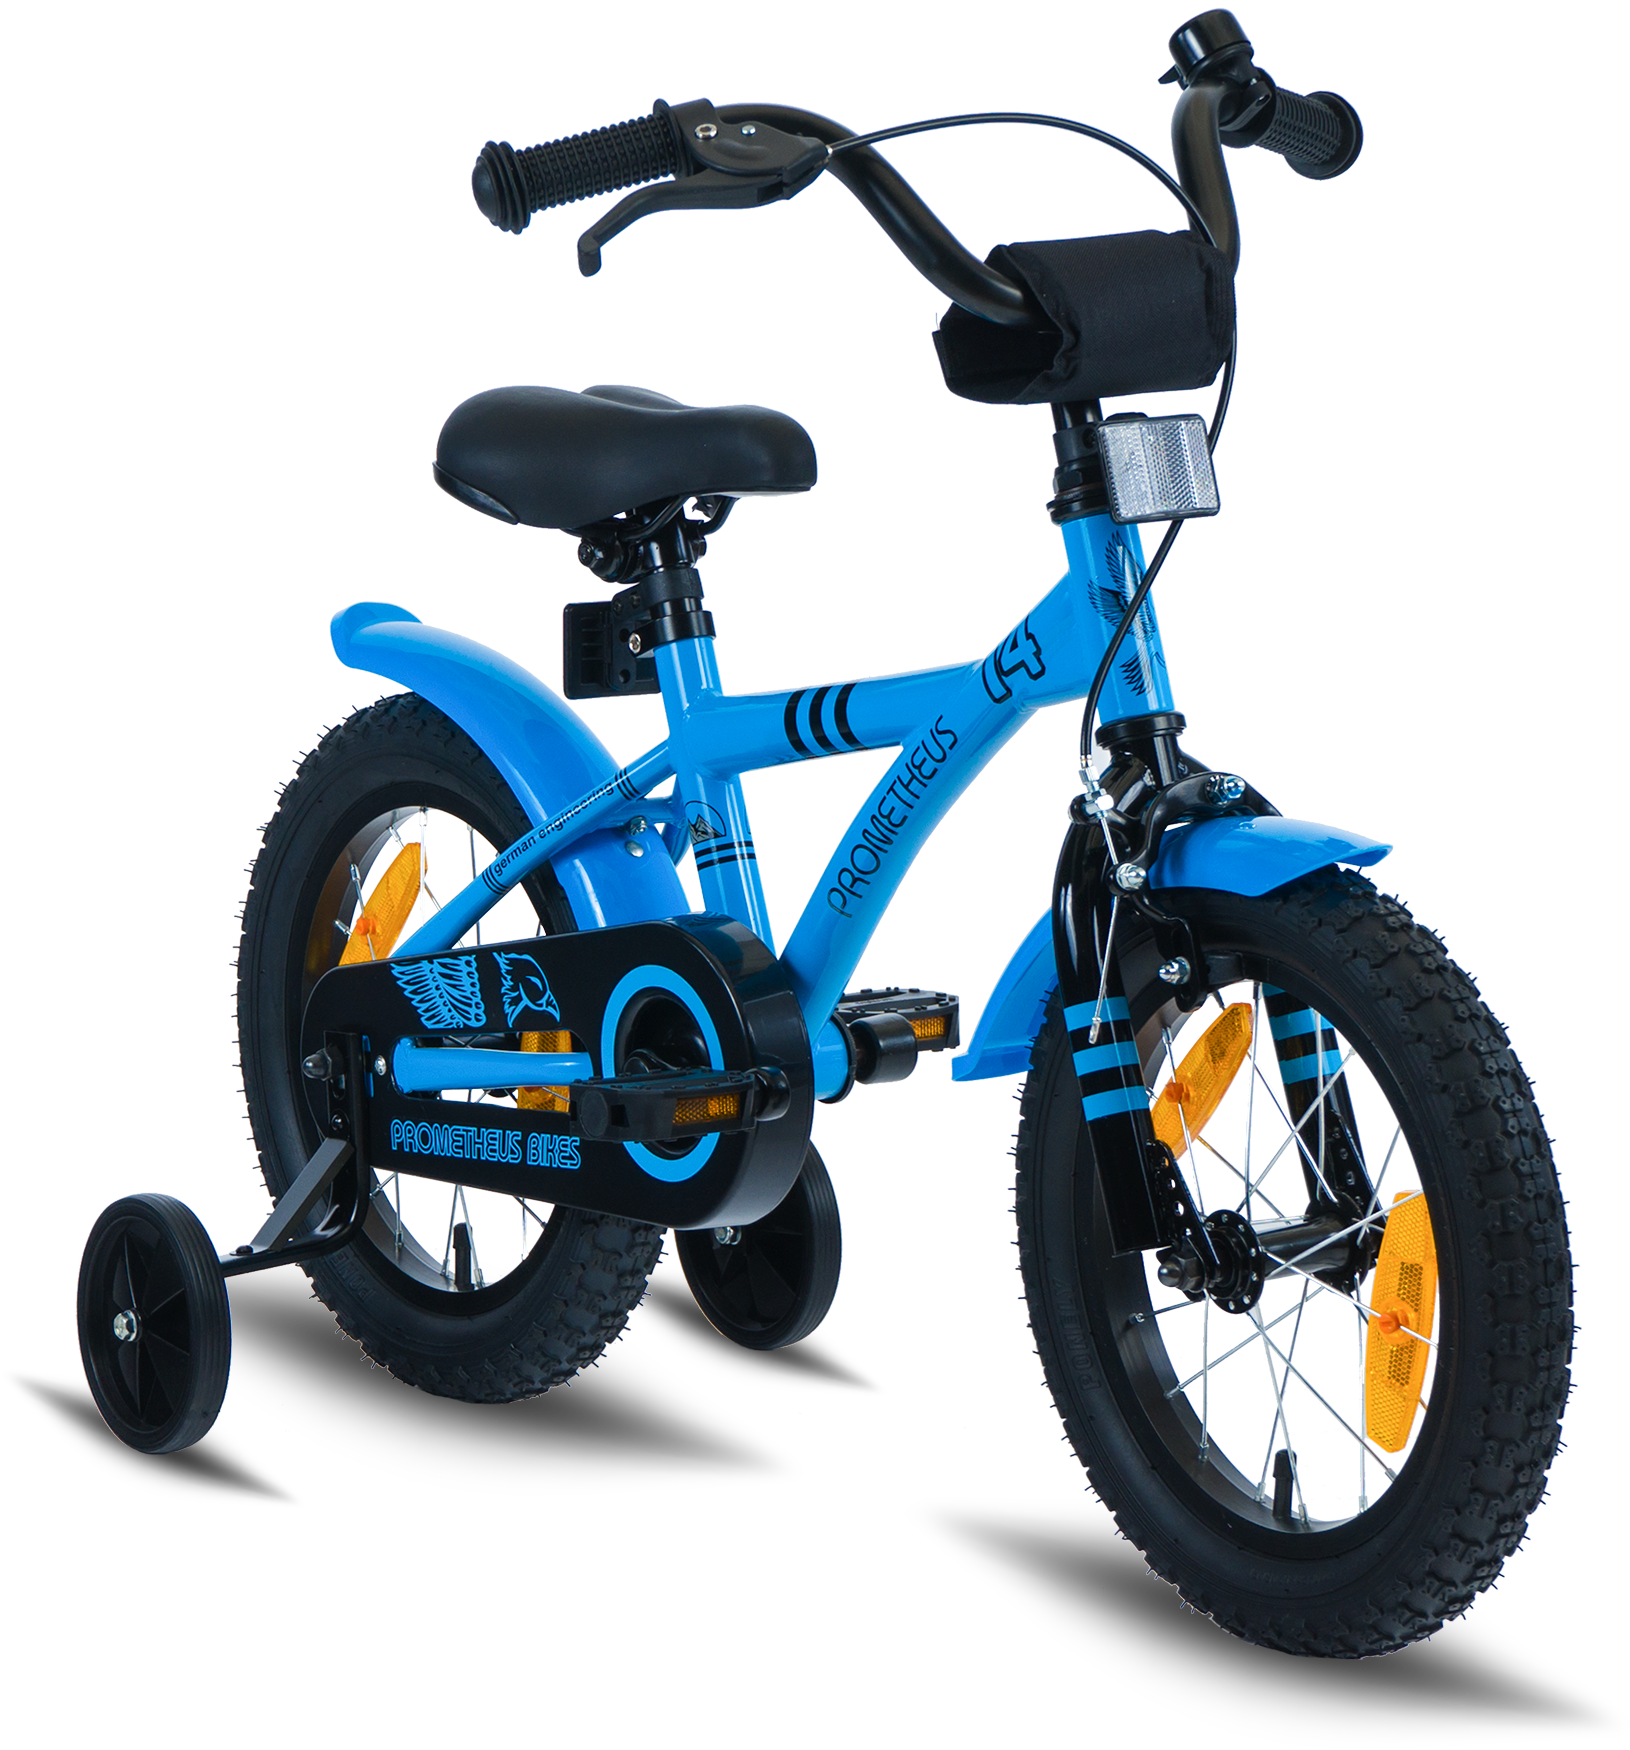 kinderfahrrad online kaufen prometheus bikes. Black Bedroom Furniture Sets. Home Design Ideas